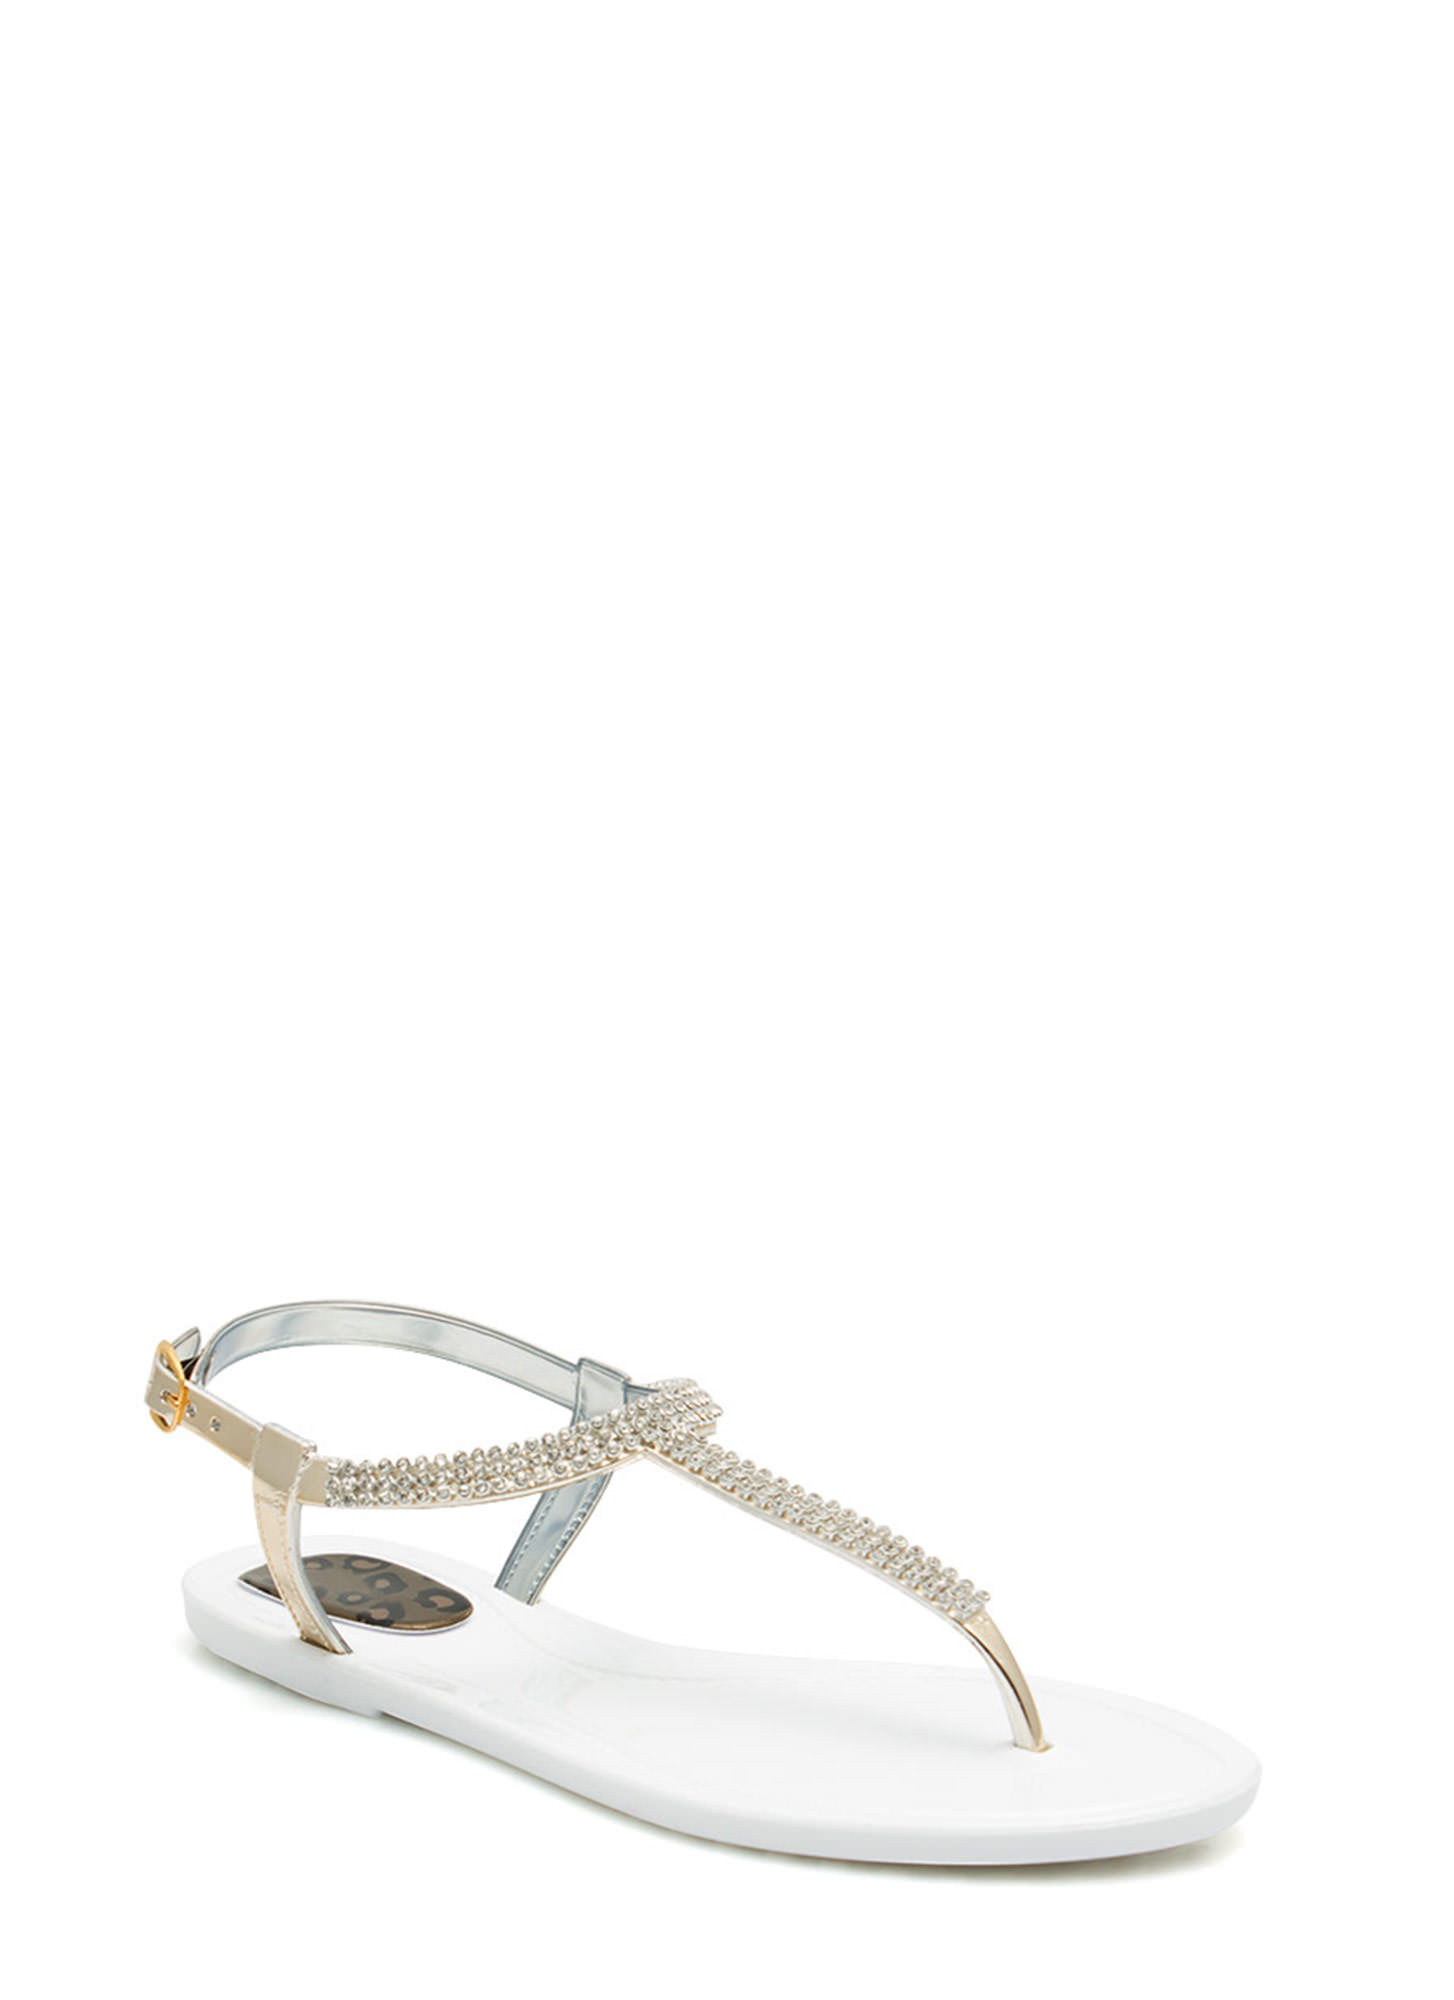 Glitz 'N Glimmer Jelly Sandals WHITE